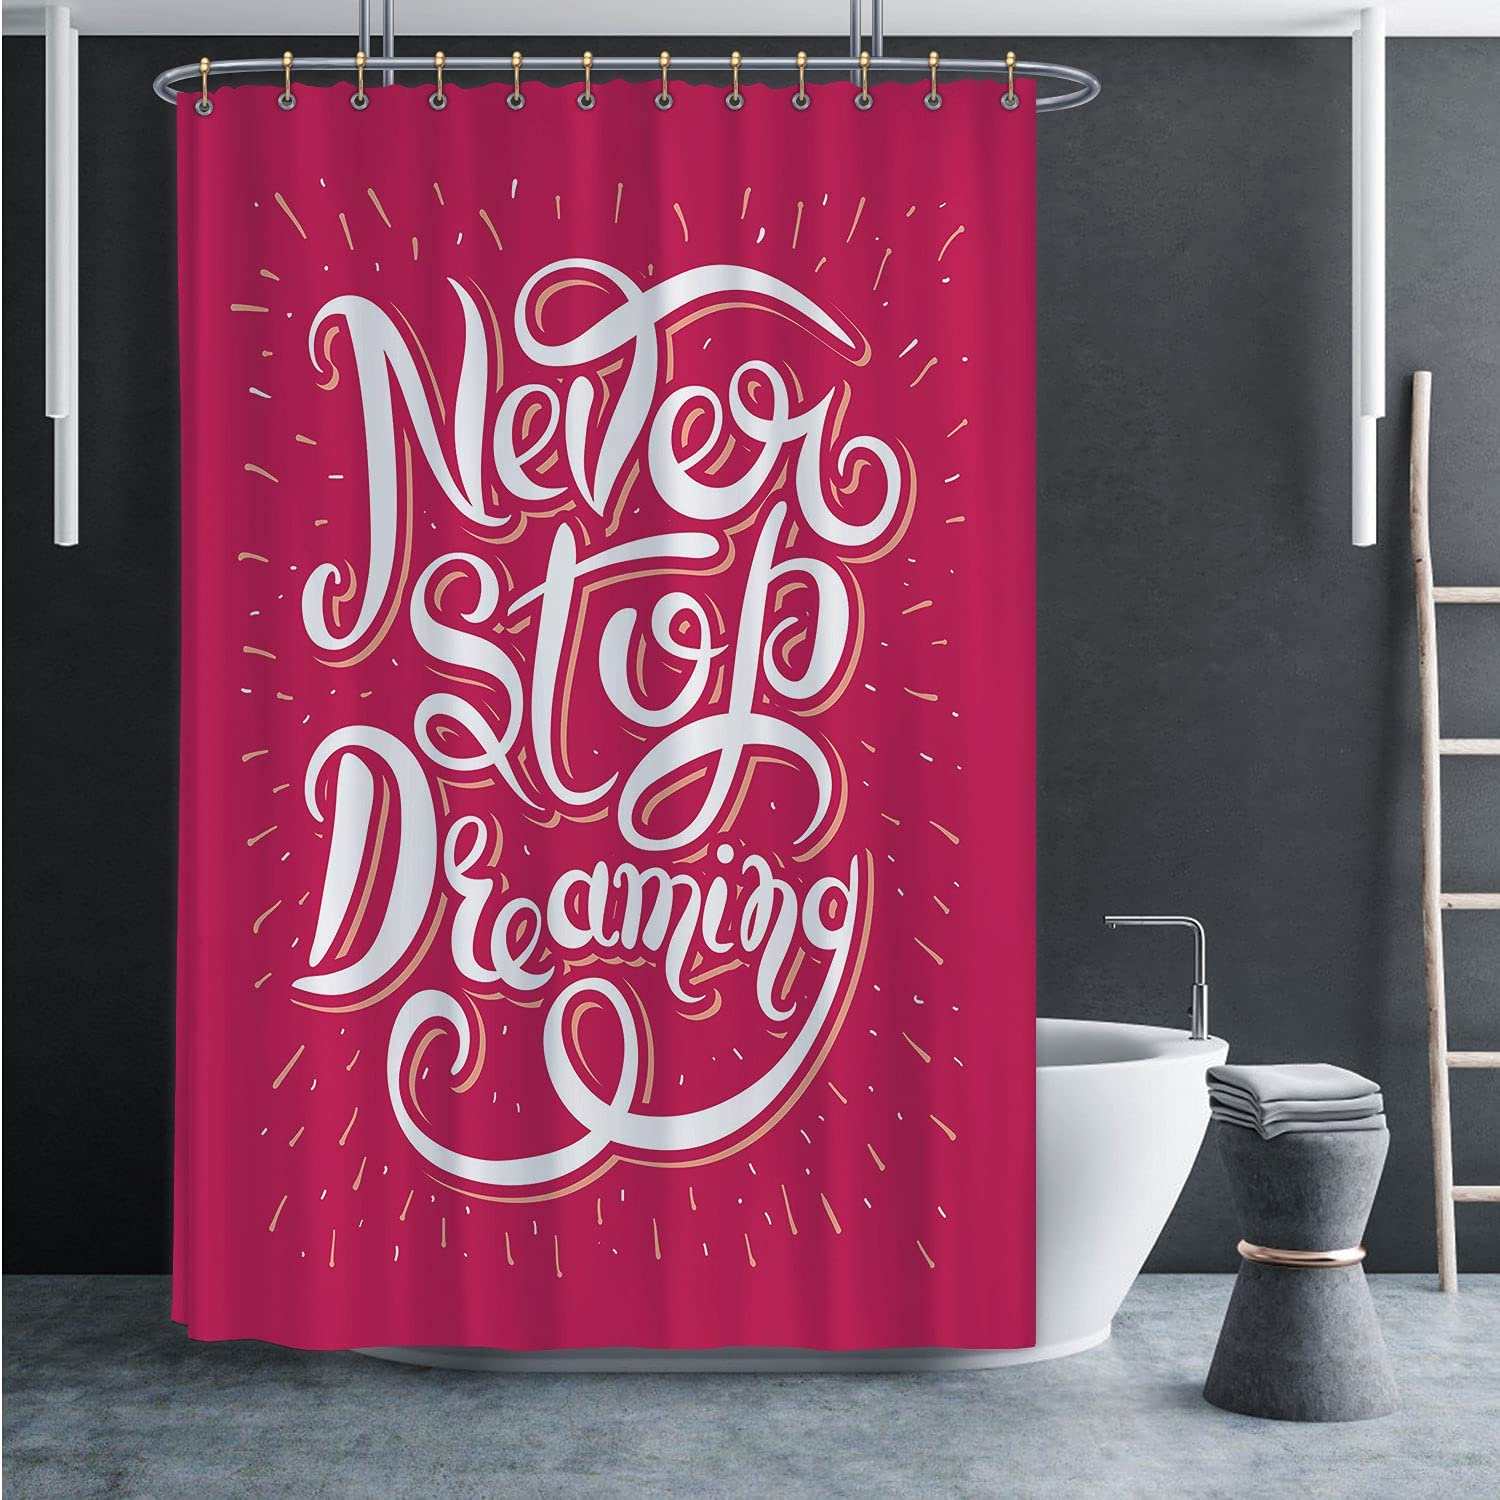 Never Stop Dreaming Popular brand in the world Inspirational Text Motivational Re Limited price sale on Poster